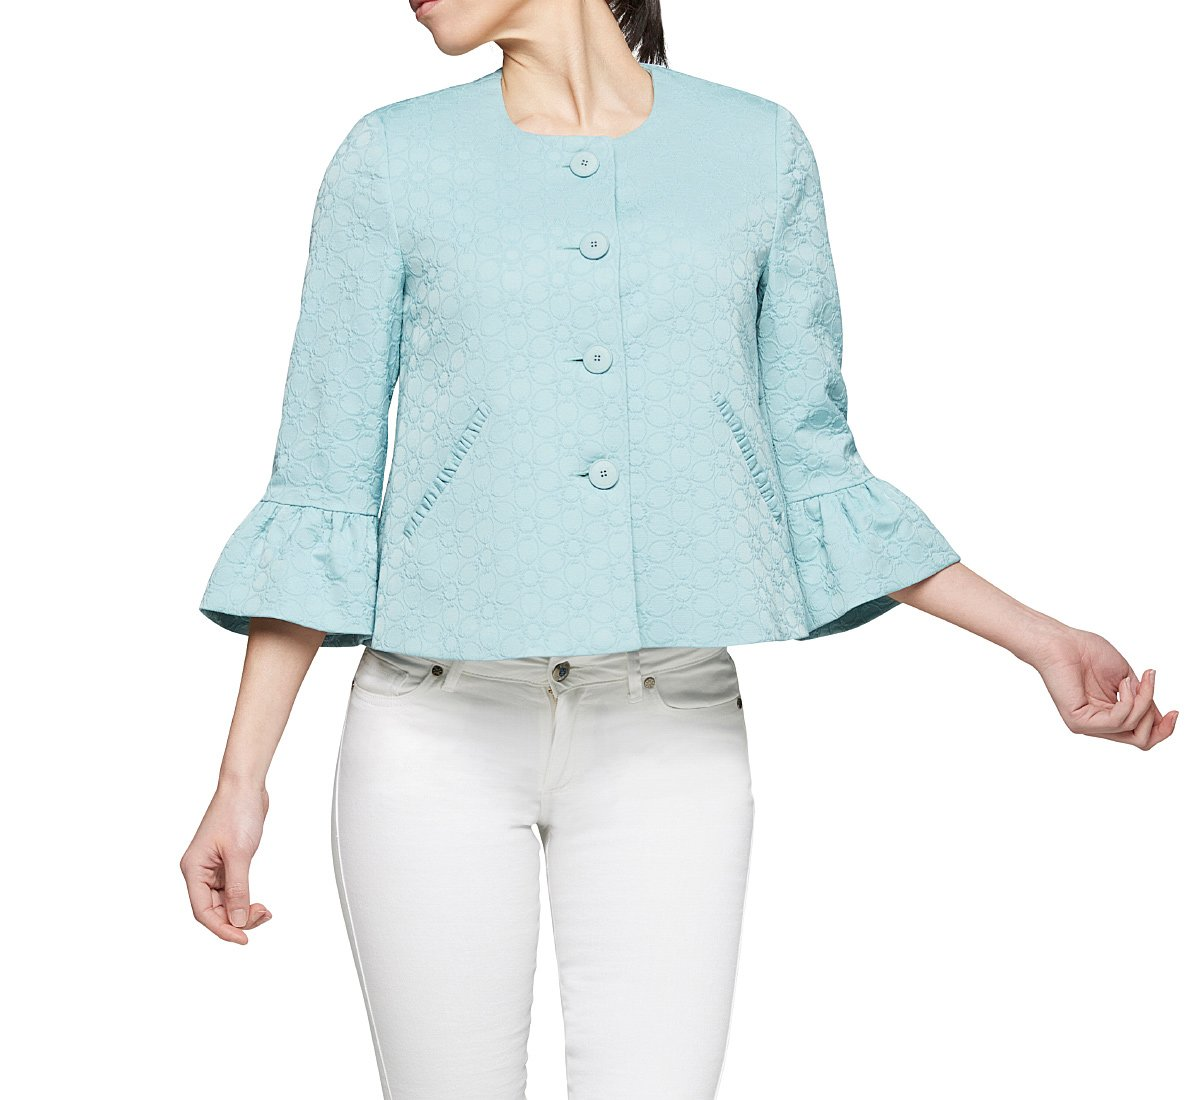 Short jacket in plain colour